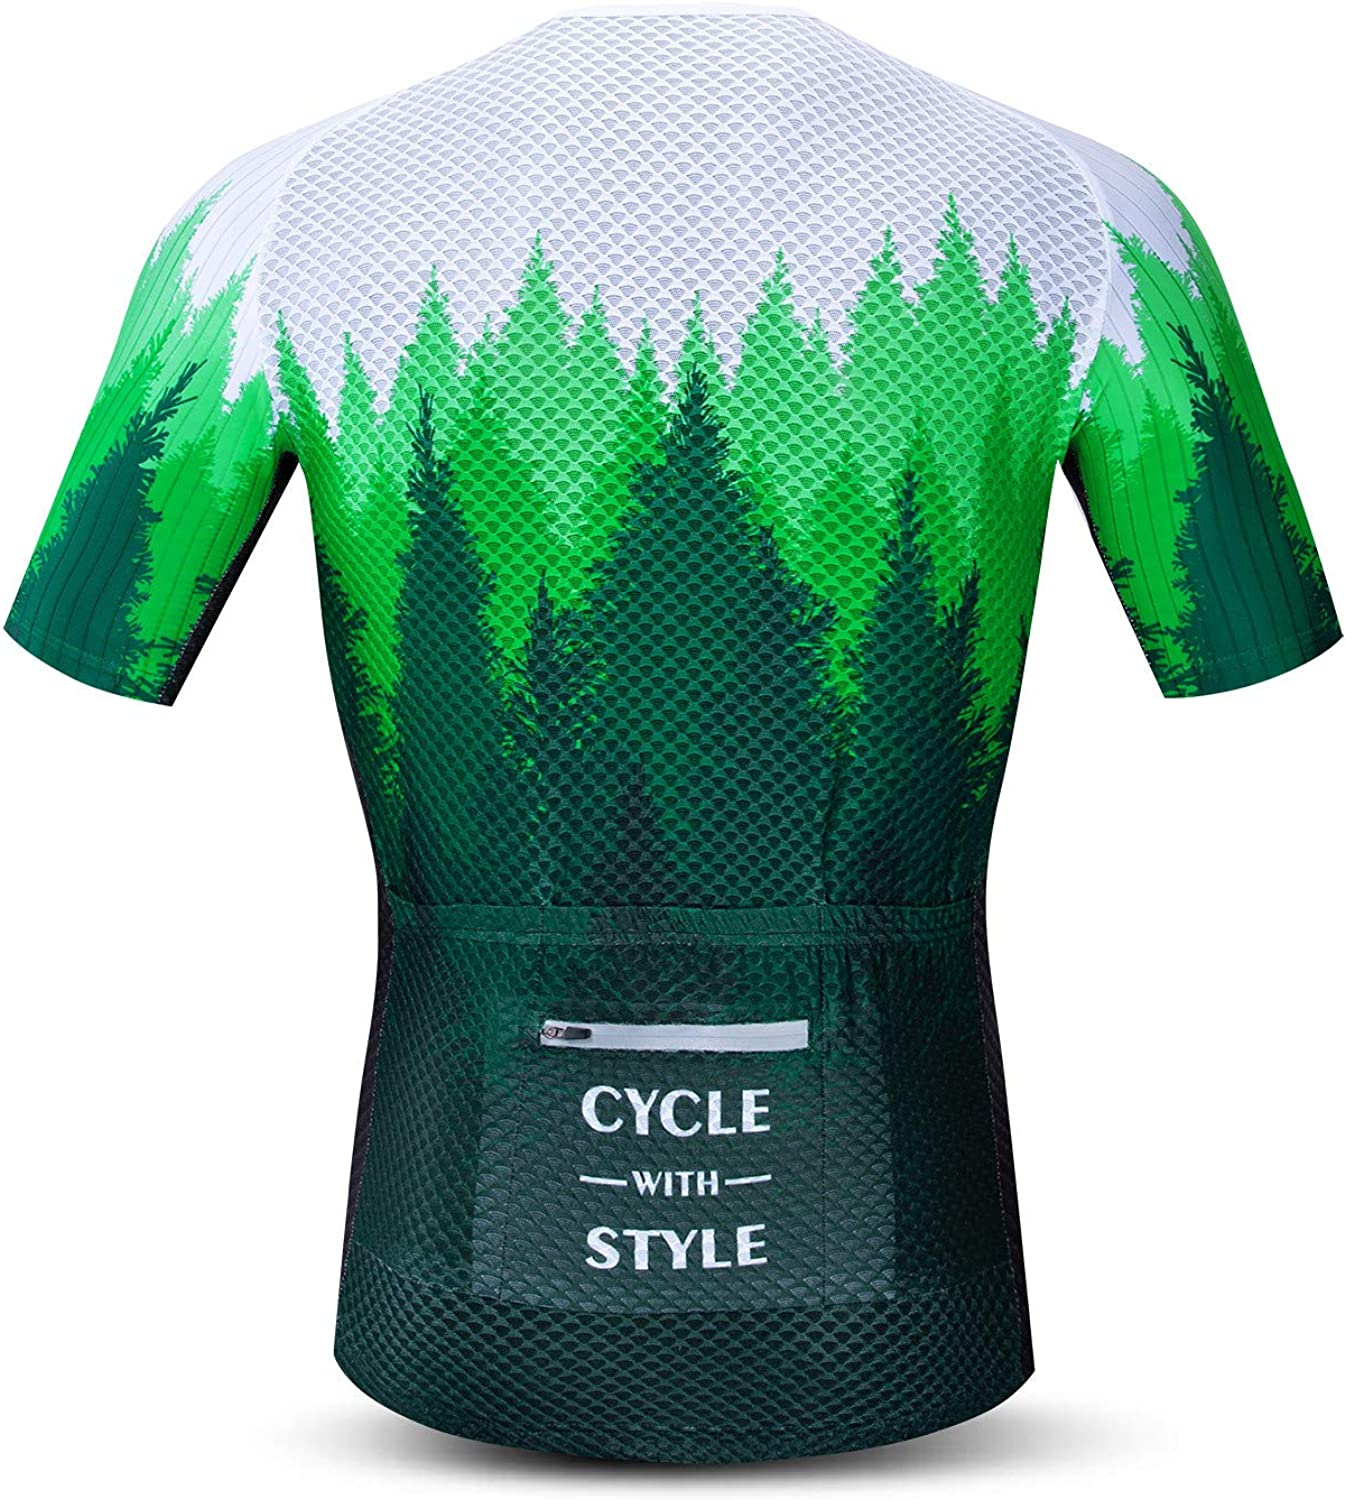 Quick Dry Bicycle Shirt S-3XL Higher Quality Mens Cycling Jersey Bike Short Sleeve with 4 Rear Pockets Breathable